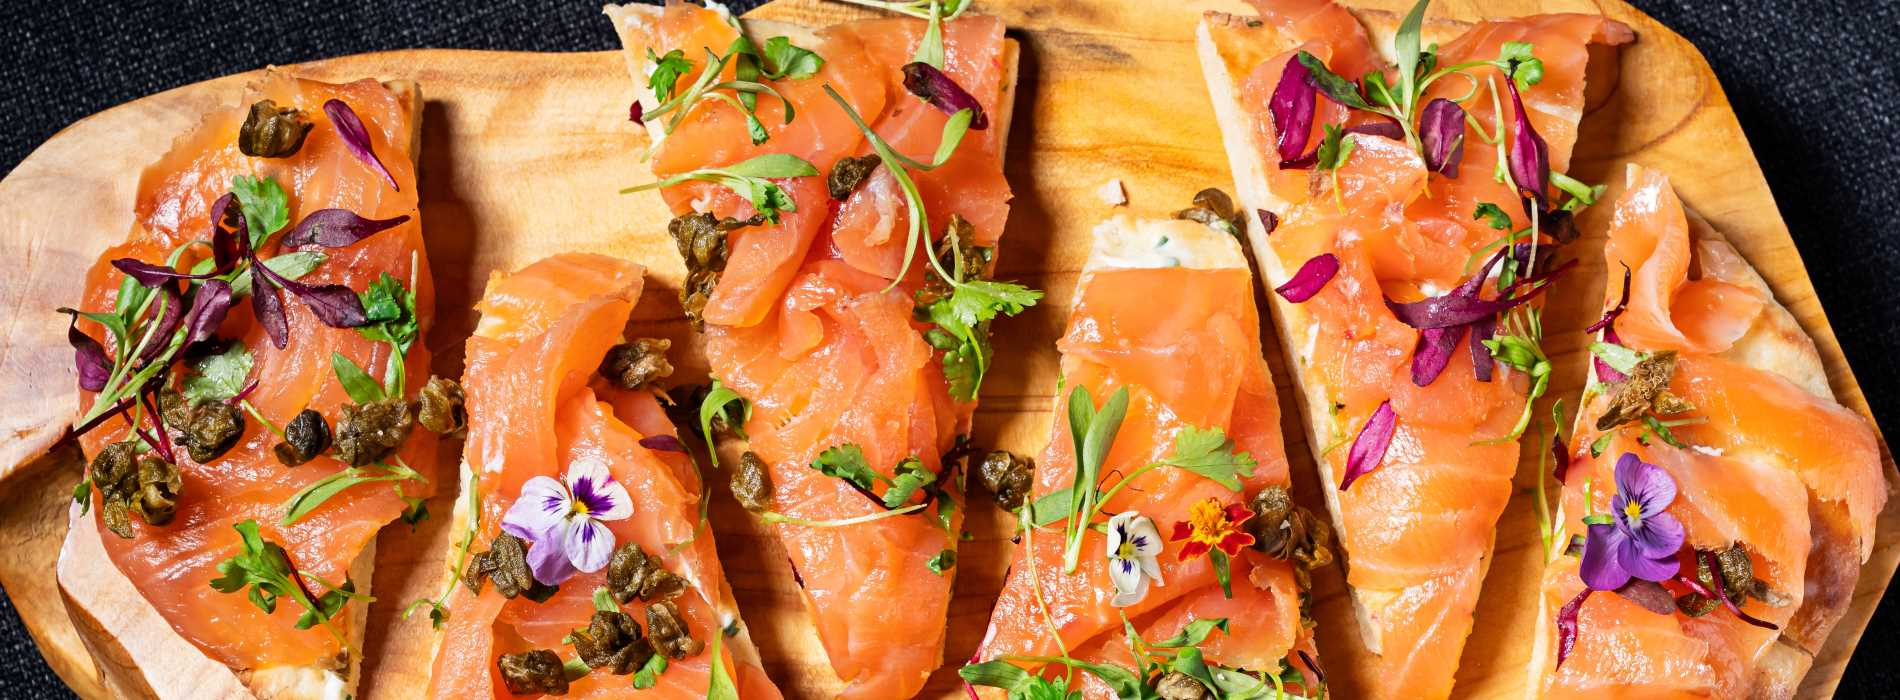 Salmon Platter served within L'Enfant Bar and Grill